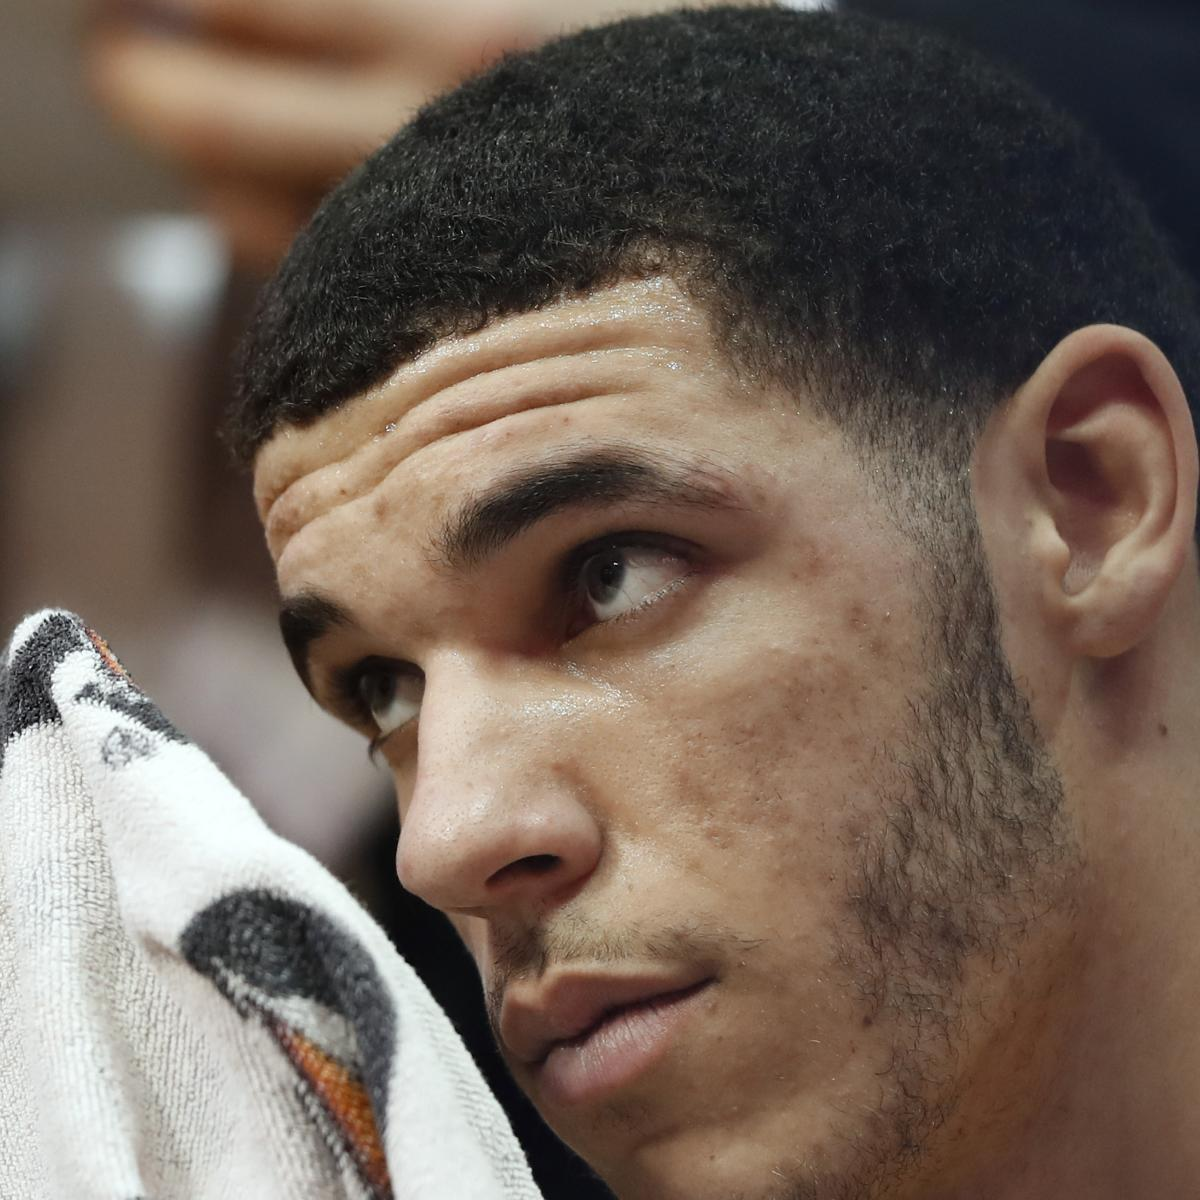 6042a68d073 Report: Lonzo Ball, Girlfriend Denise Garcia Expecting 1st Child ...